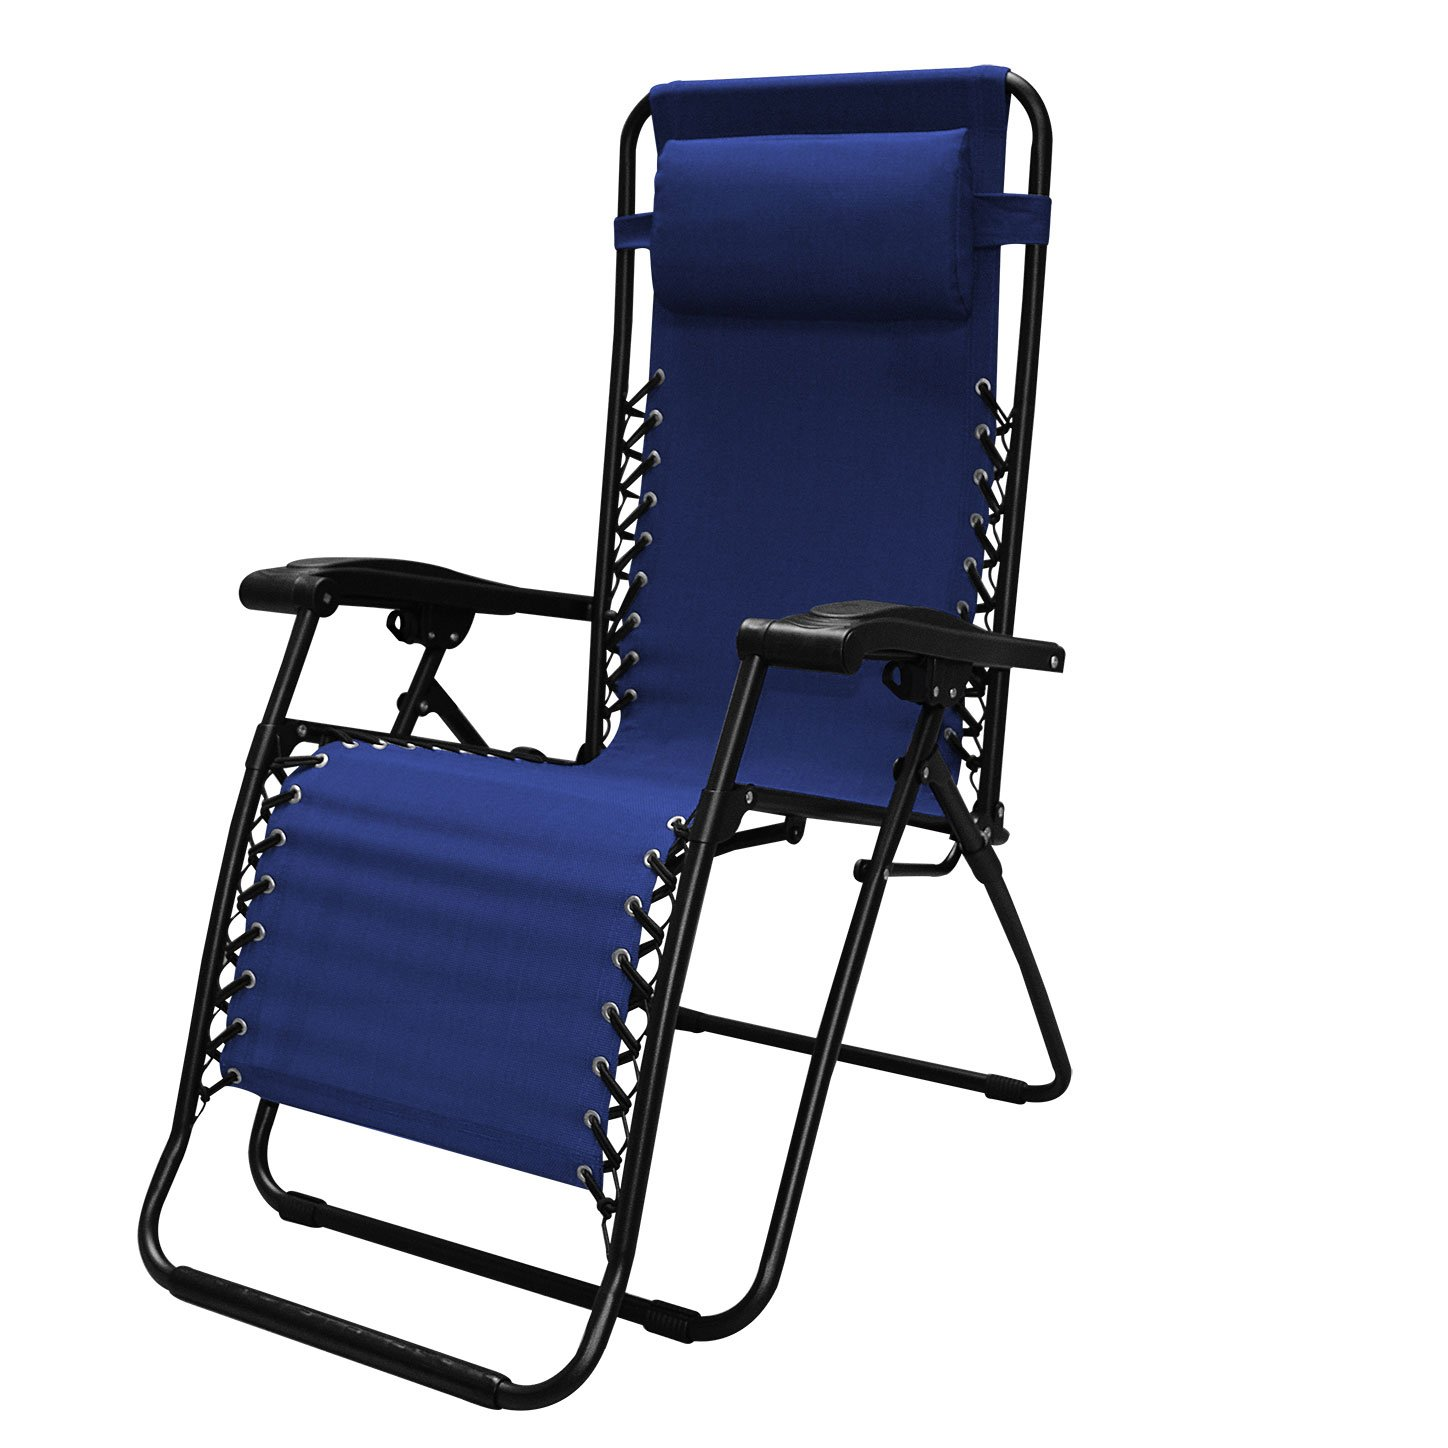 Caravan Sports Infinity Zero Gravity Chair - 2 Pack, Blue by Caravan Canopy (Image #2)